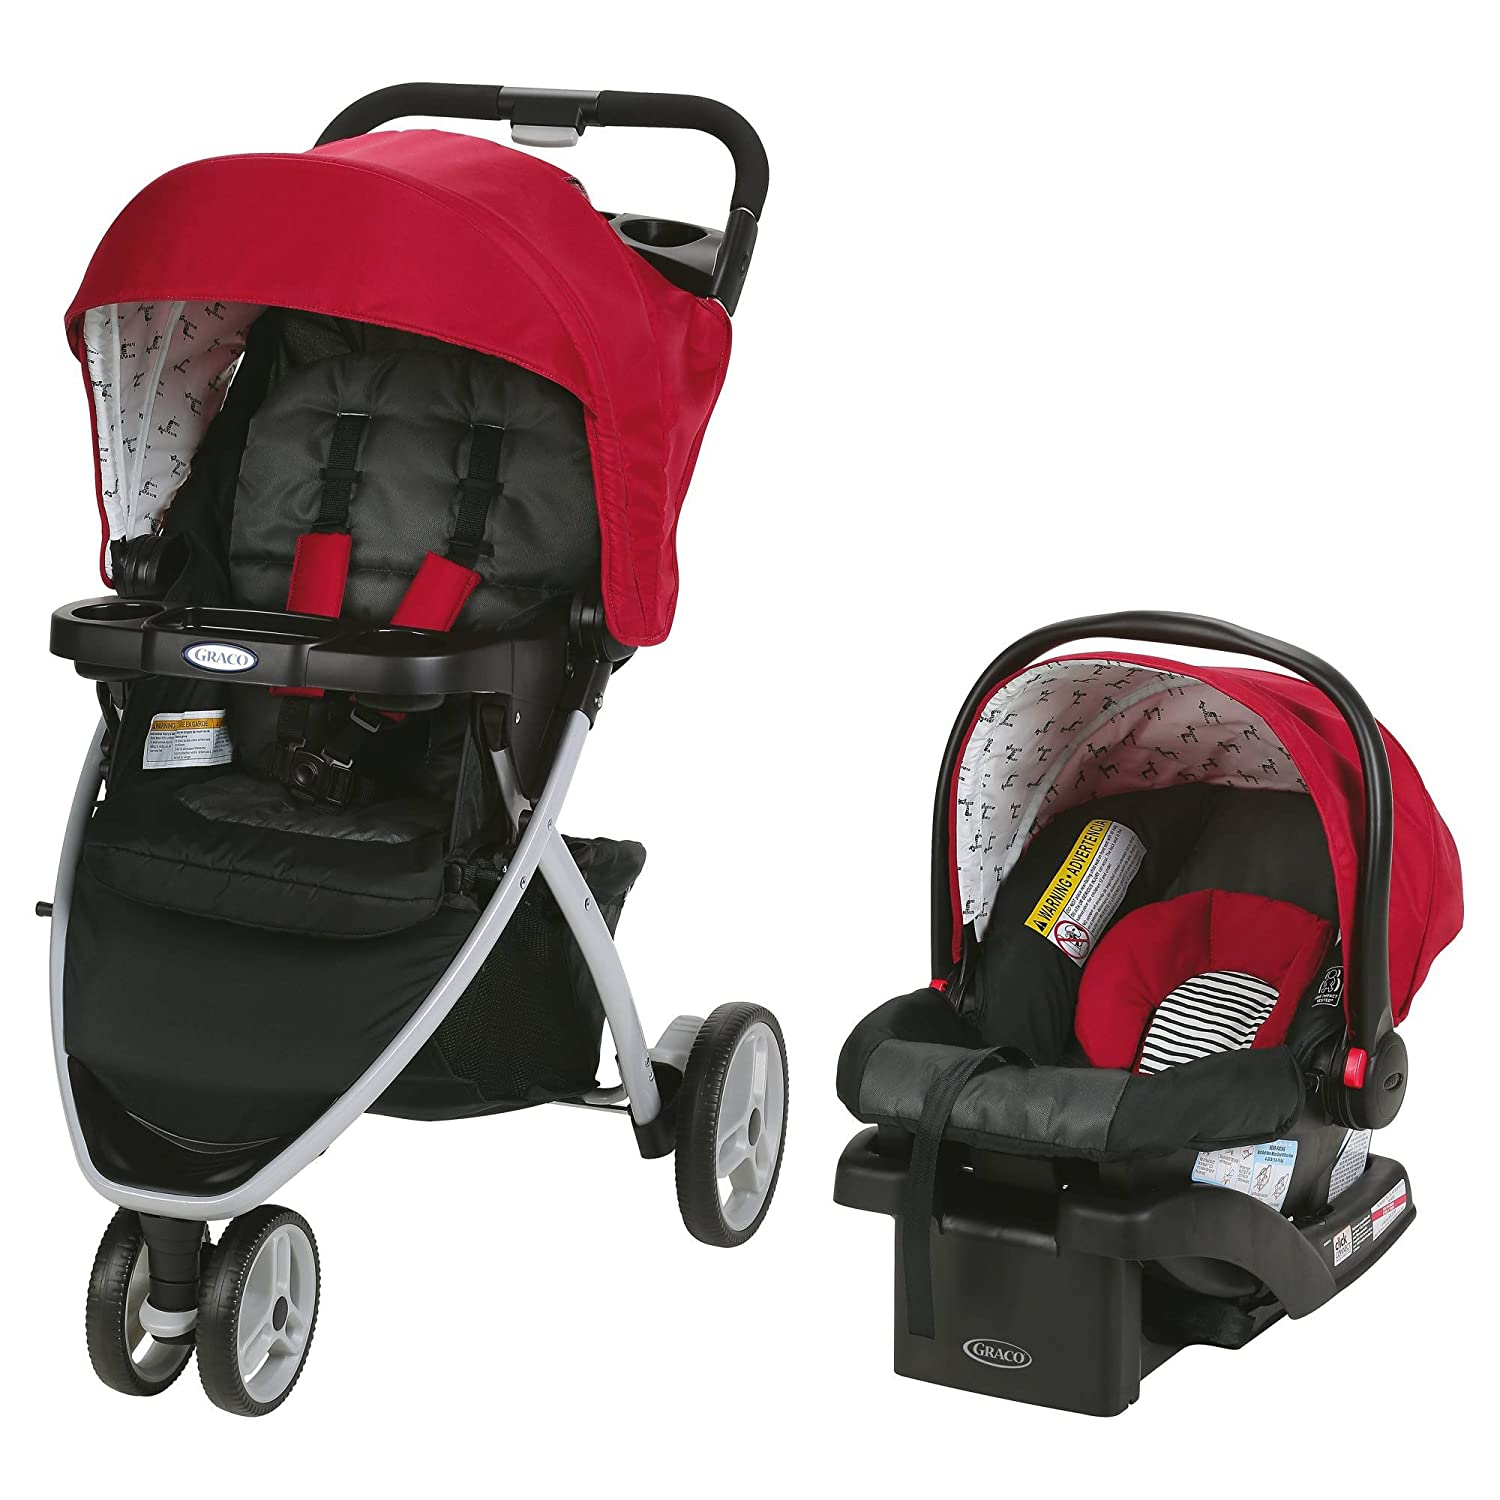 7e3d6e60c Amazon.com : Baby Stroller and Car Seat Combo Premium Pram Travel System  Click N Connect Jogger in Modern Style FREE STROLLER HOOK CLIP (Red) : Baby